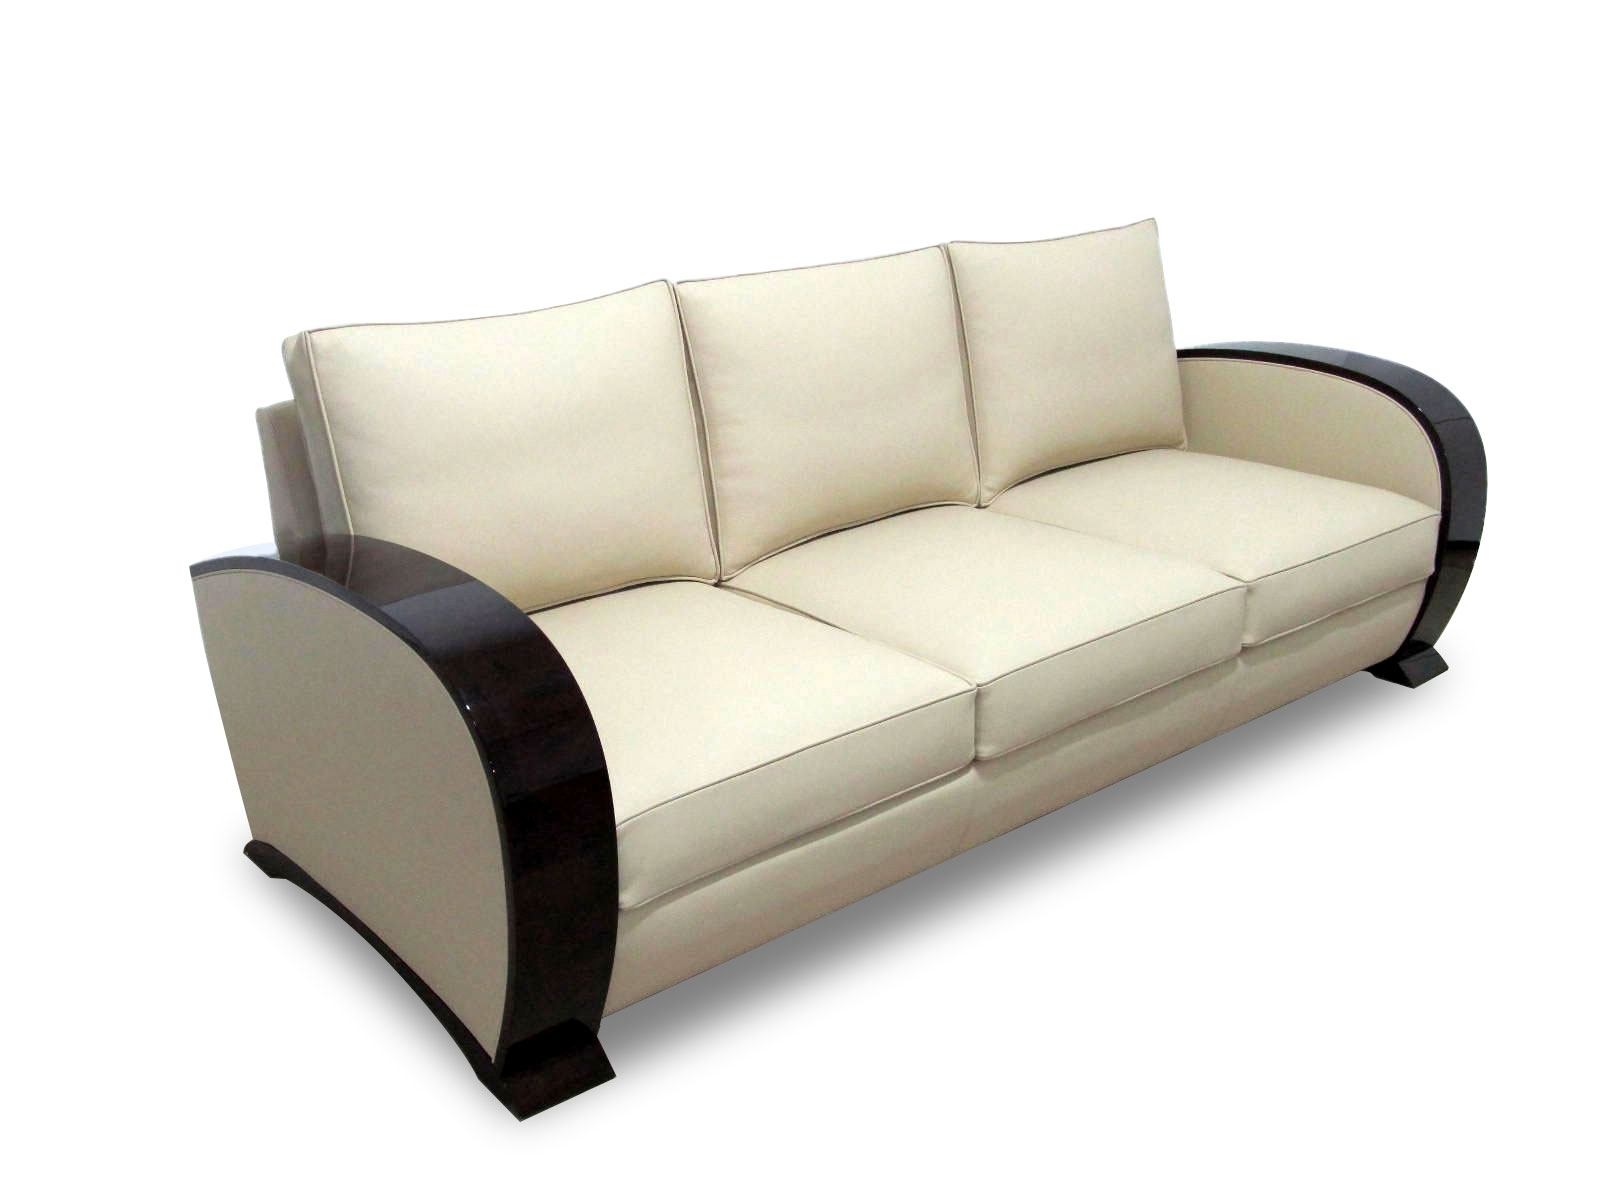 Art Deco Sofas Pertaining To Widely Used Art Deco Furniture – Hifigeny Custom Furniture (View 7 of 20)